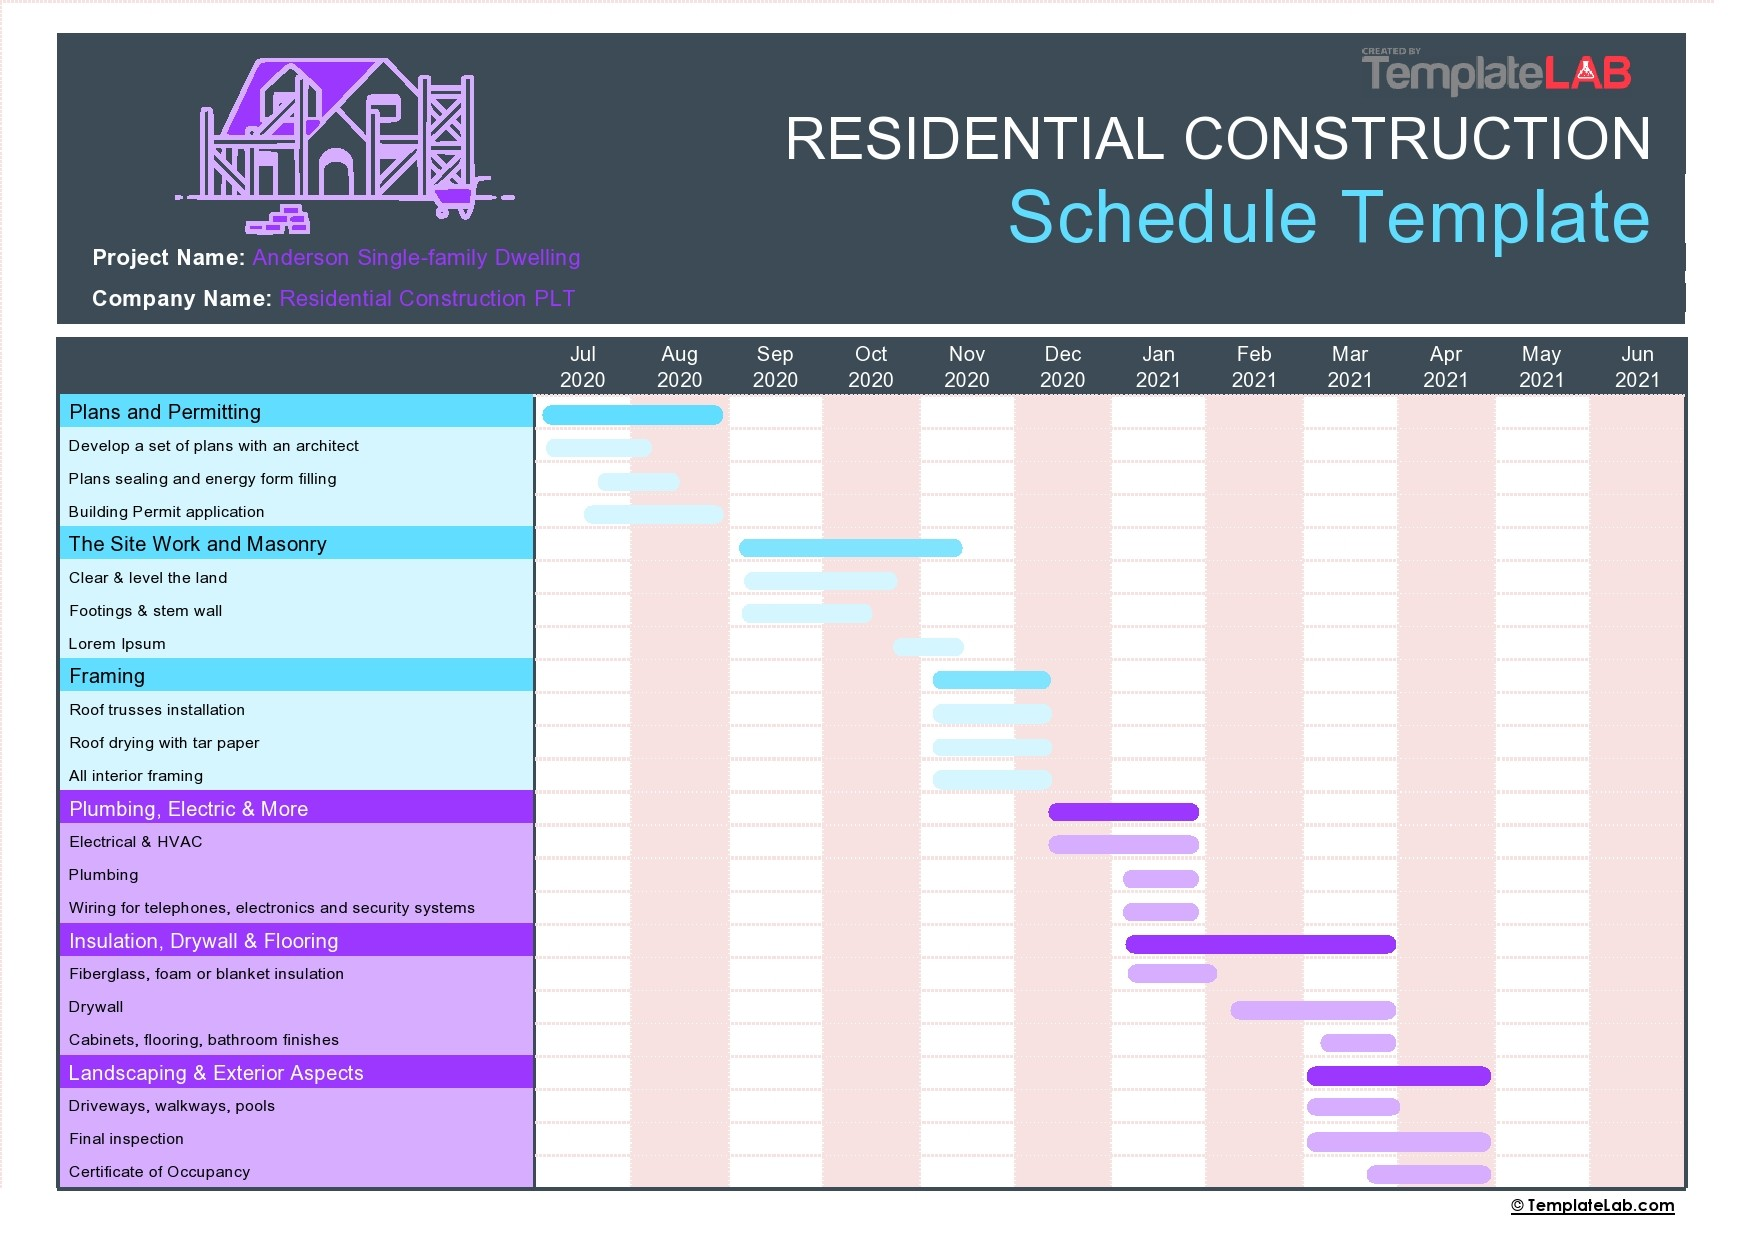 Free Residential Construction Schedule Template - TemplateLab.com